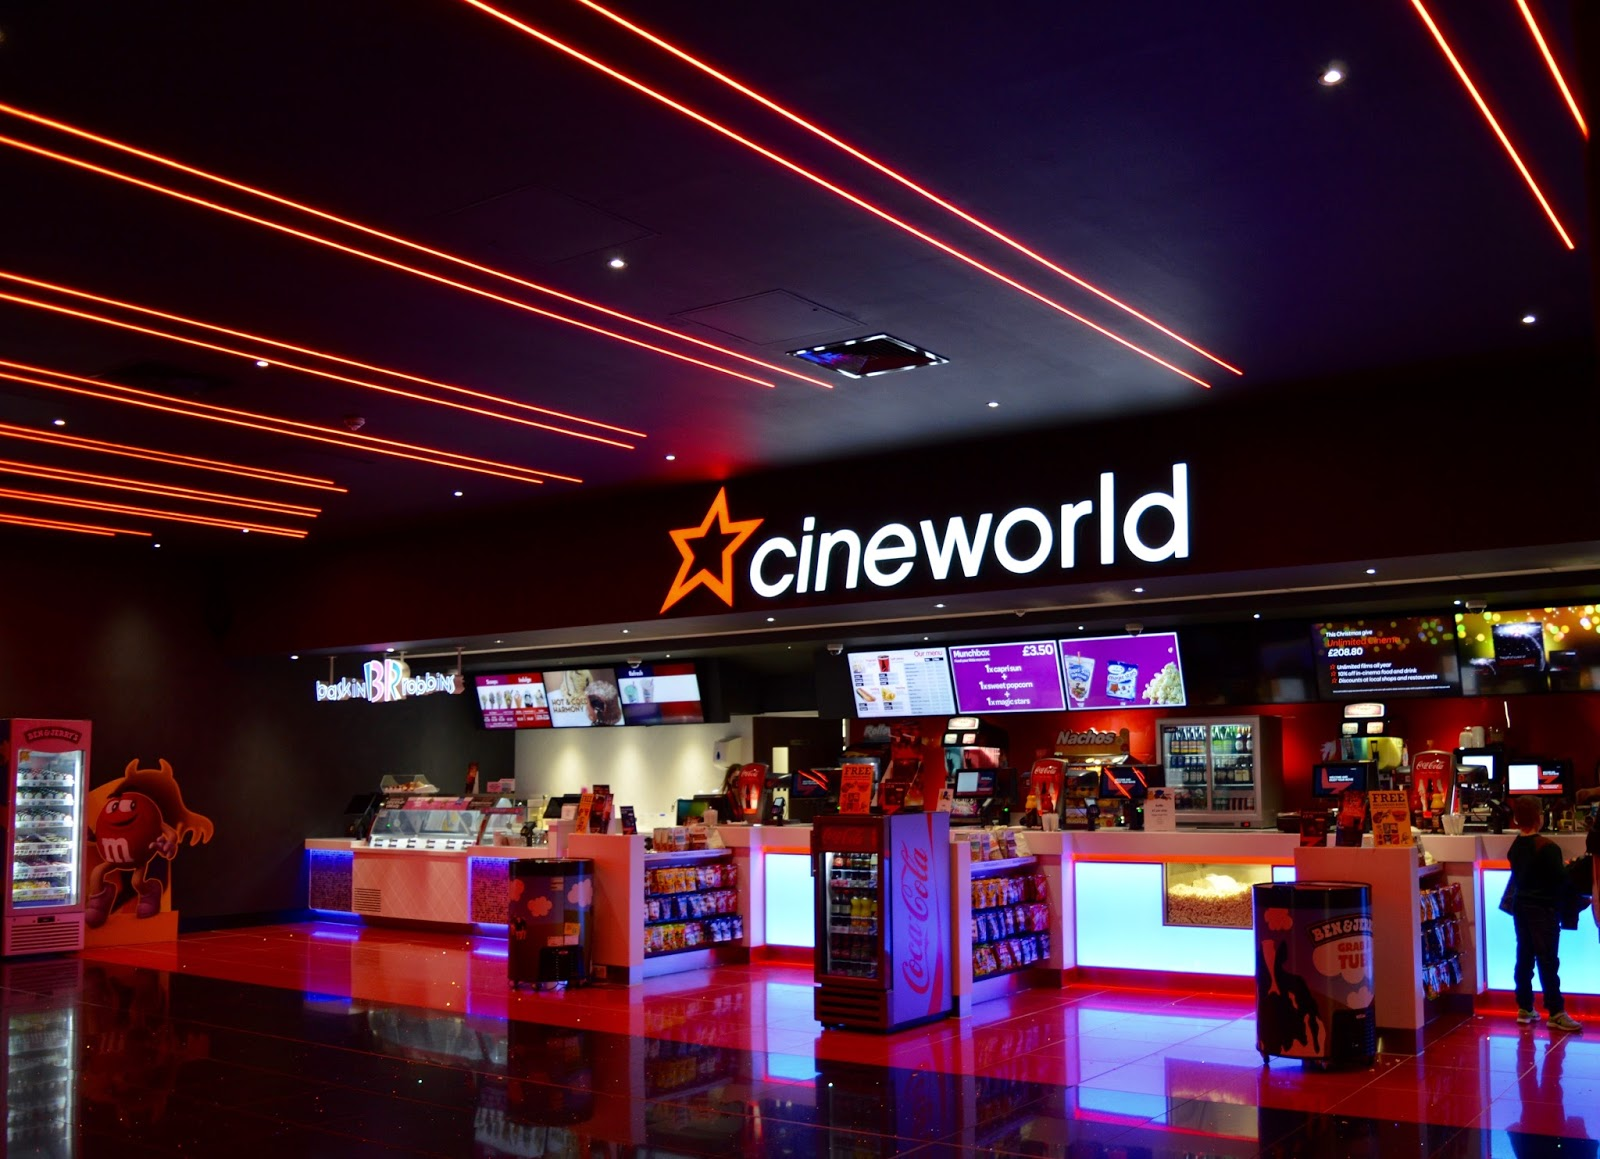 New Cineworld Cinema & Family Restaurants at Dalton Park Retail Outlet in County Durham (Just off A19) - Cineworld concessions